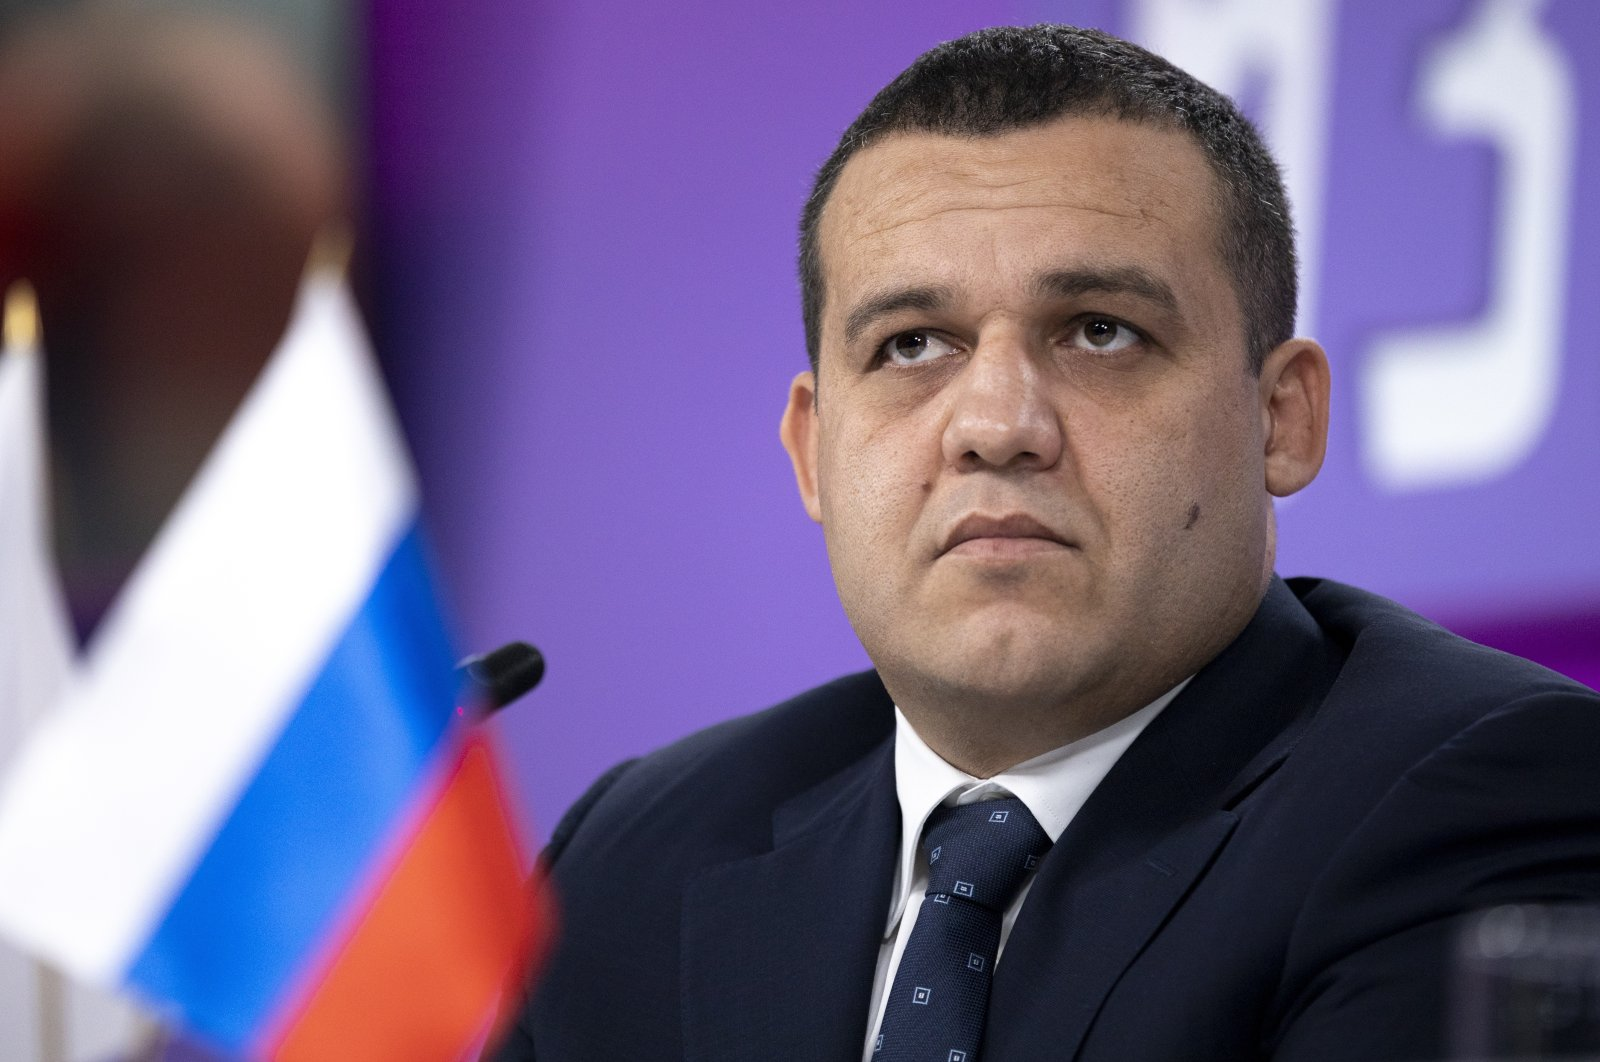 Umar Kremlev listens to a question during a news conference in Moscow, Russia, Oct. 27, 2020. (AP Photo)